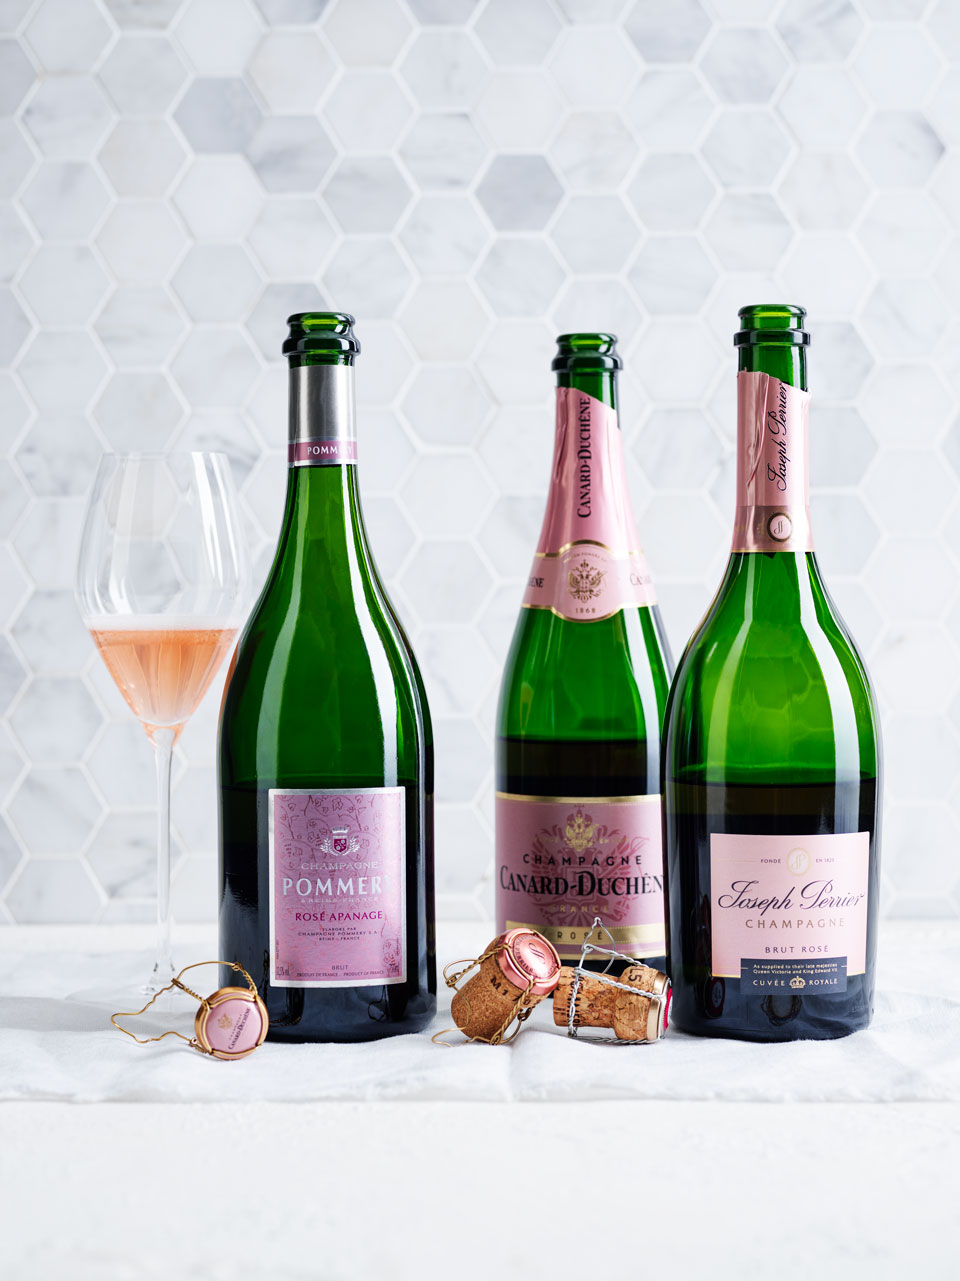 Champagne  frequently shows  the interplay of either aldehyde  or reduction.